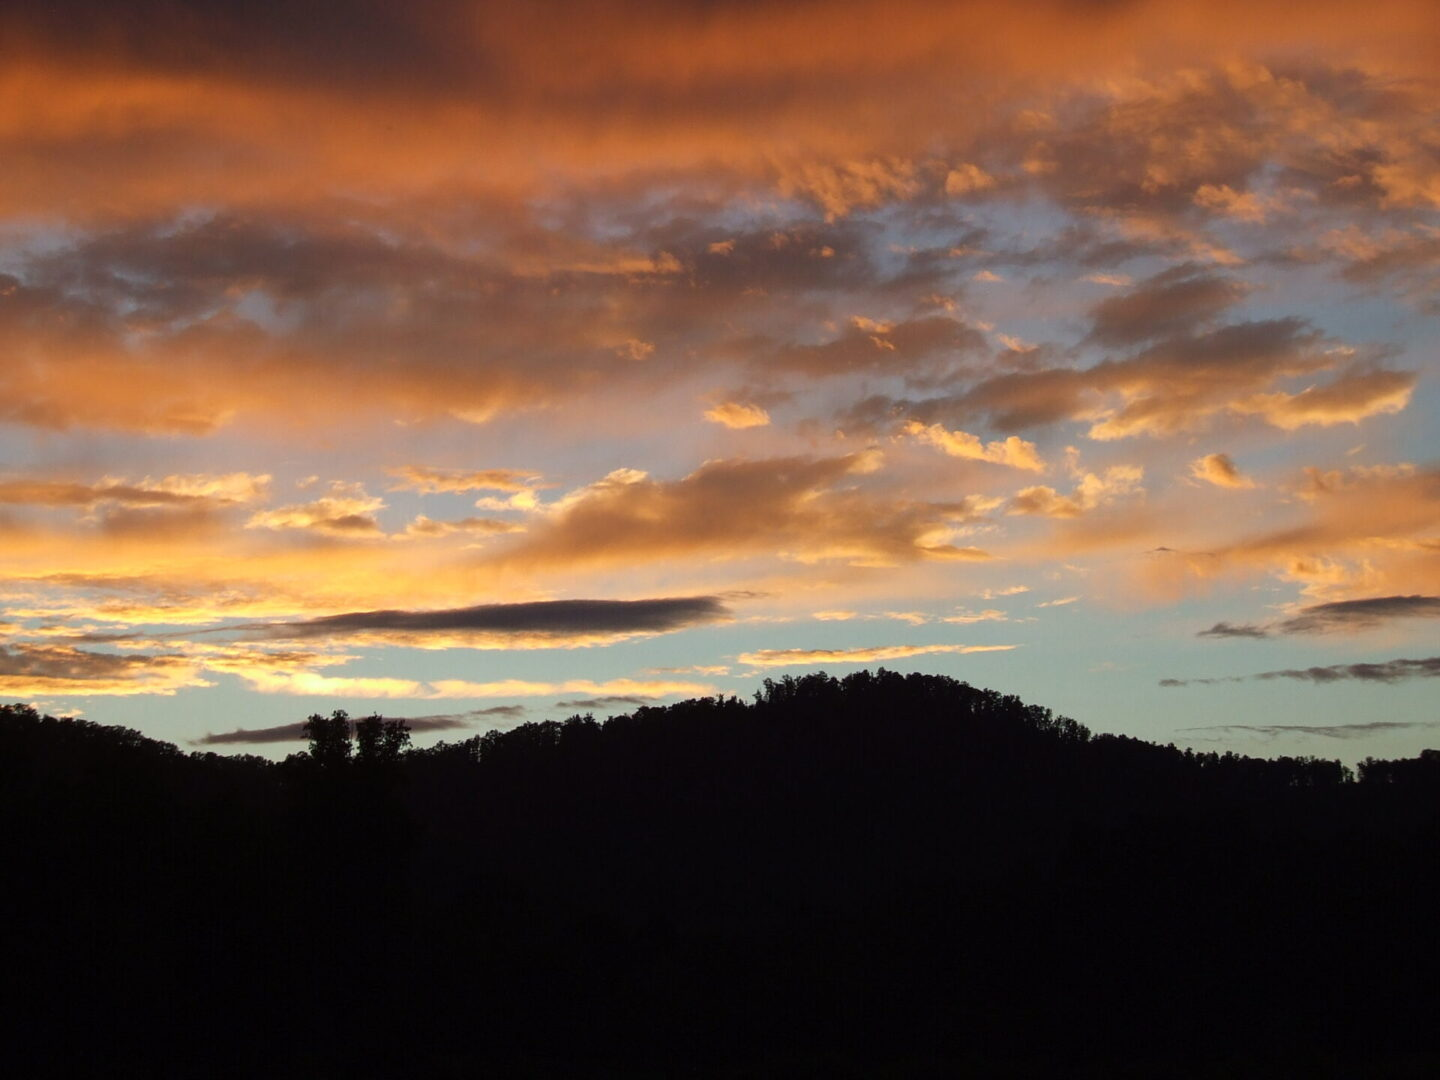 An orange sky with a mountain silhouette